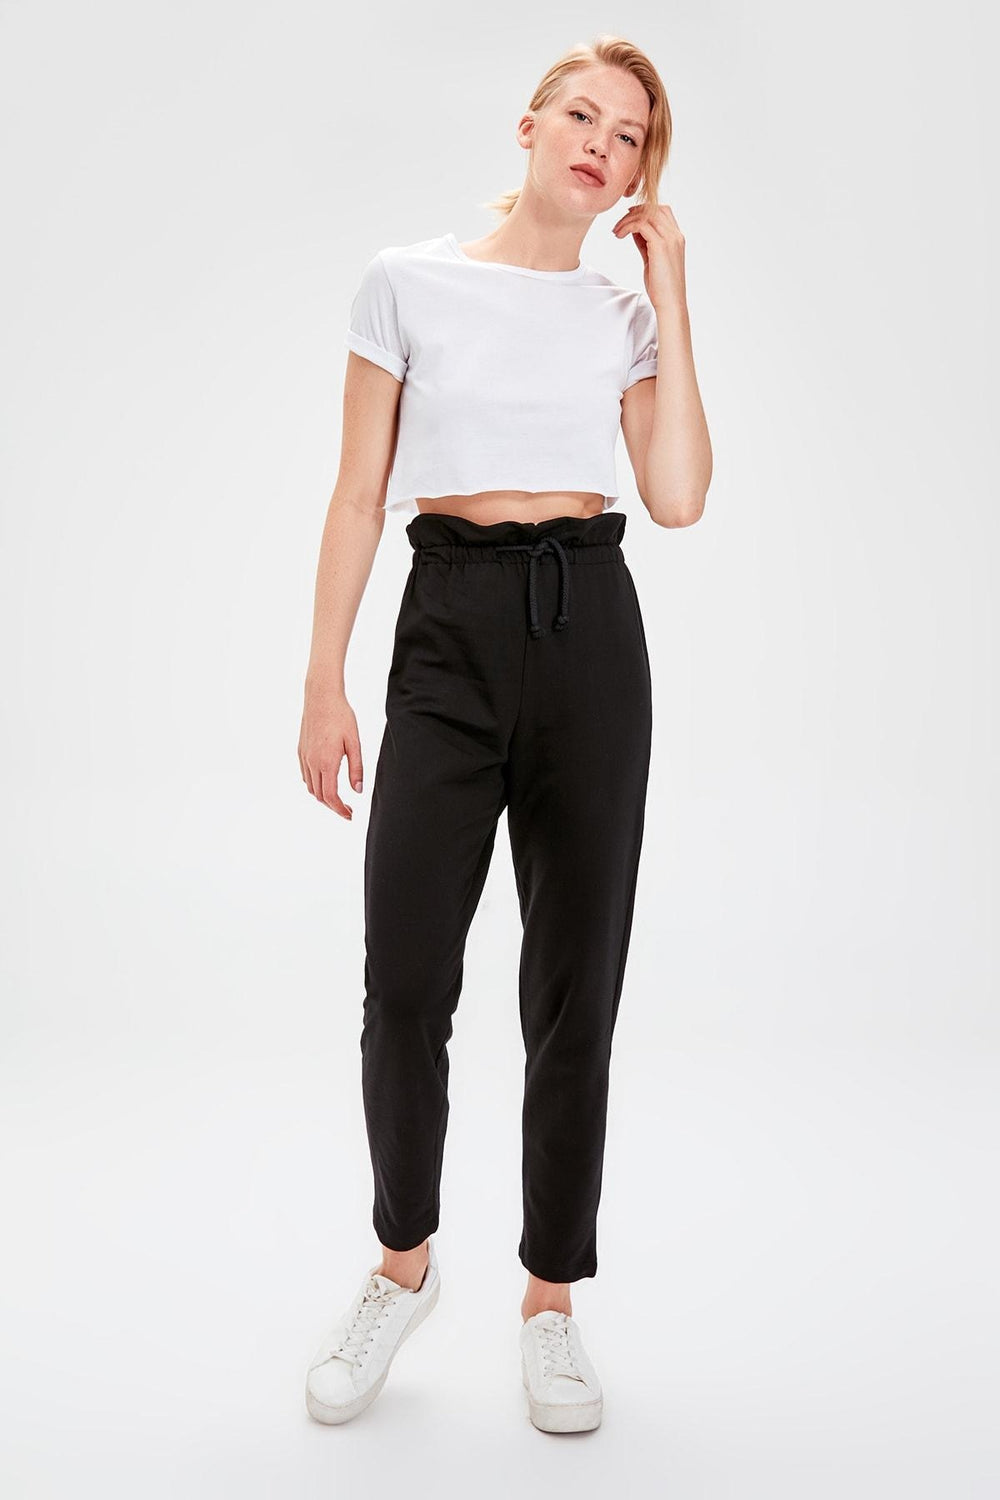 Miss Zut Miss Zut Black Paperbag Knit Sweatpants Miss Zut &CO